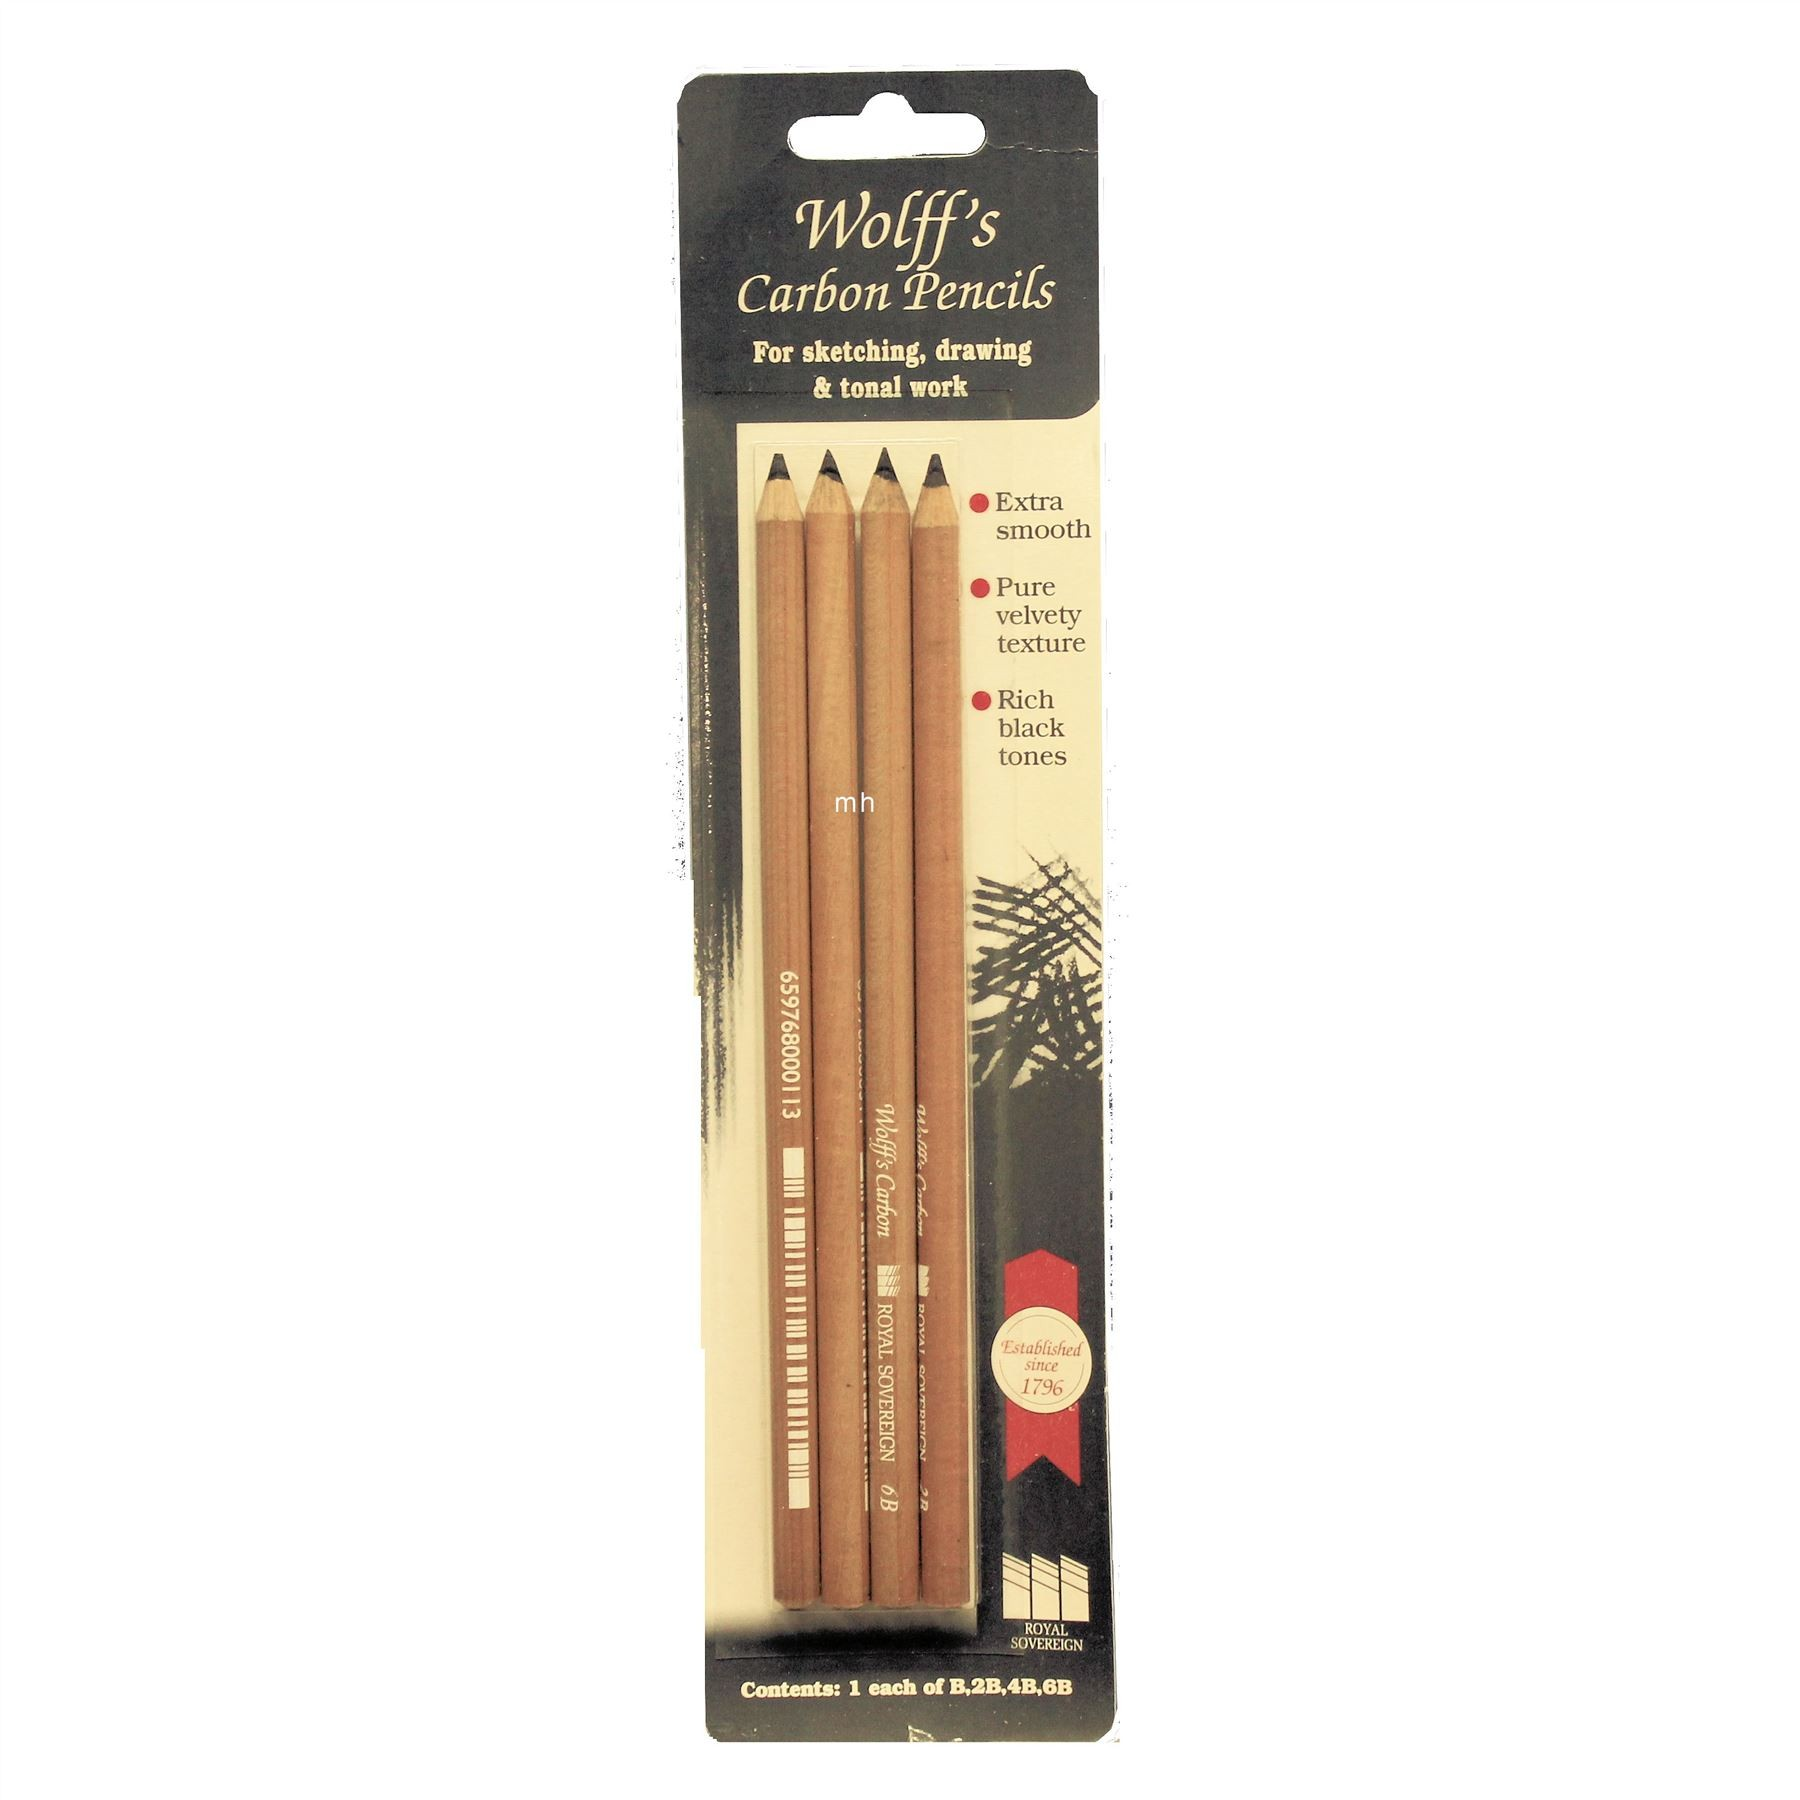 Wolff's Graded Carbon Pencils